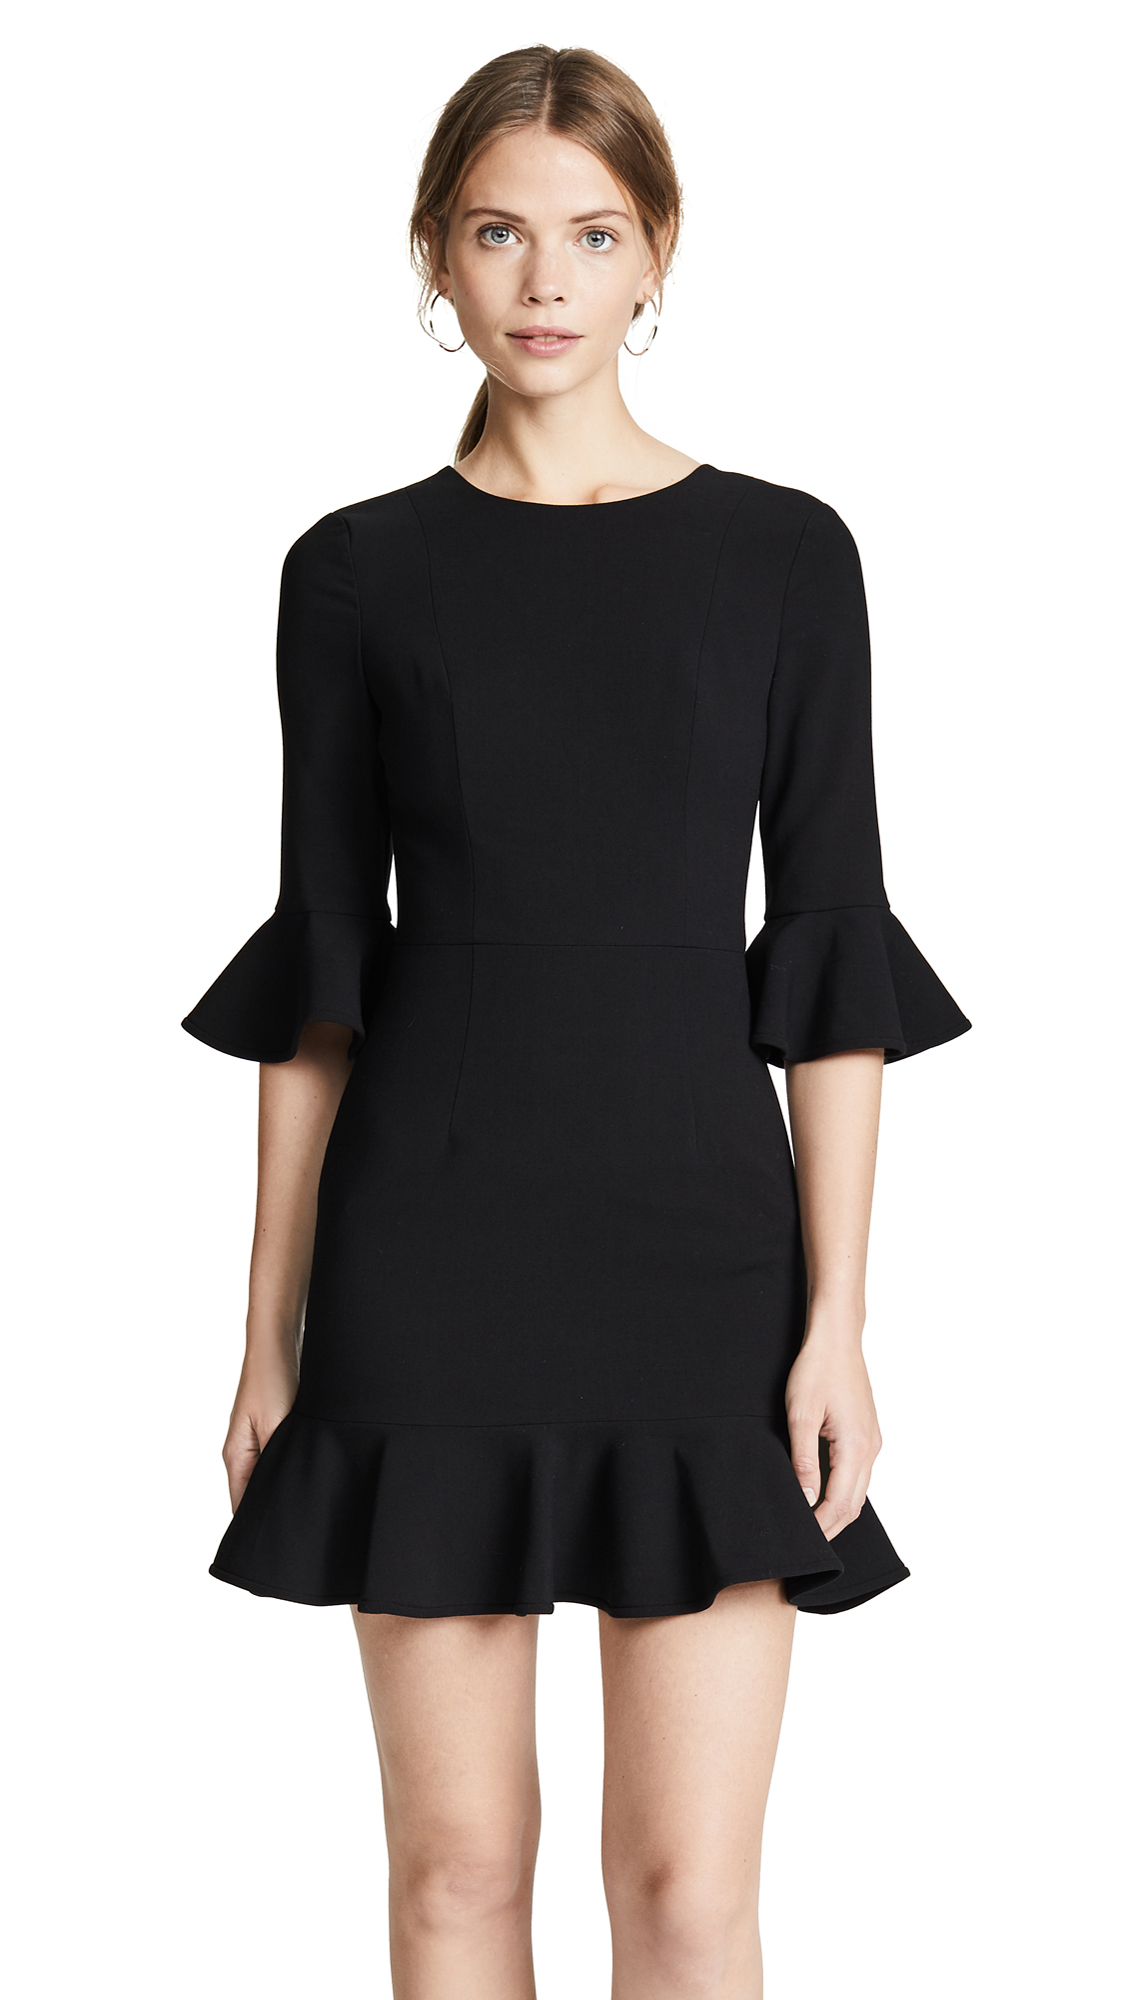 Black Halo Brooklyn Dress - Black